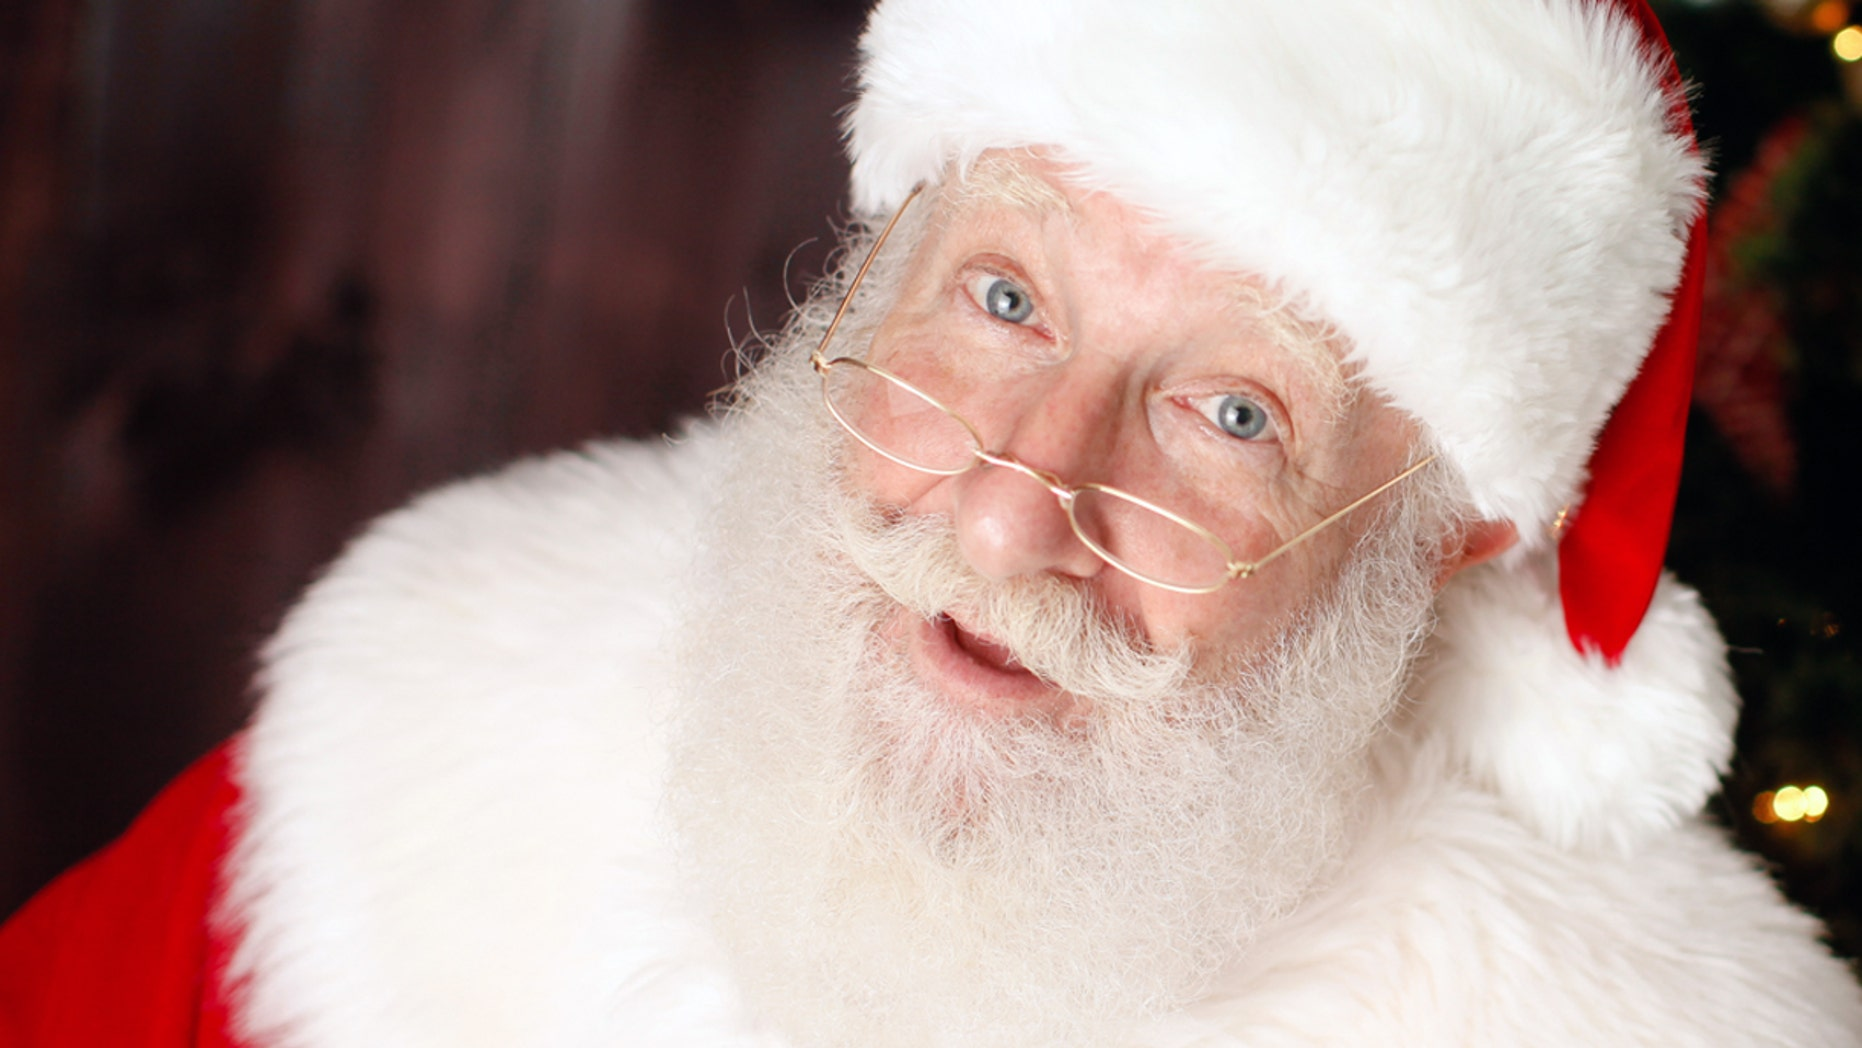 Rick Rosenthal is an orthodox Jew and a full-time Santa and he wouldn't have it any other way.